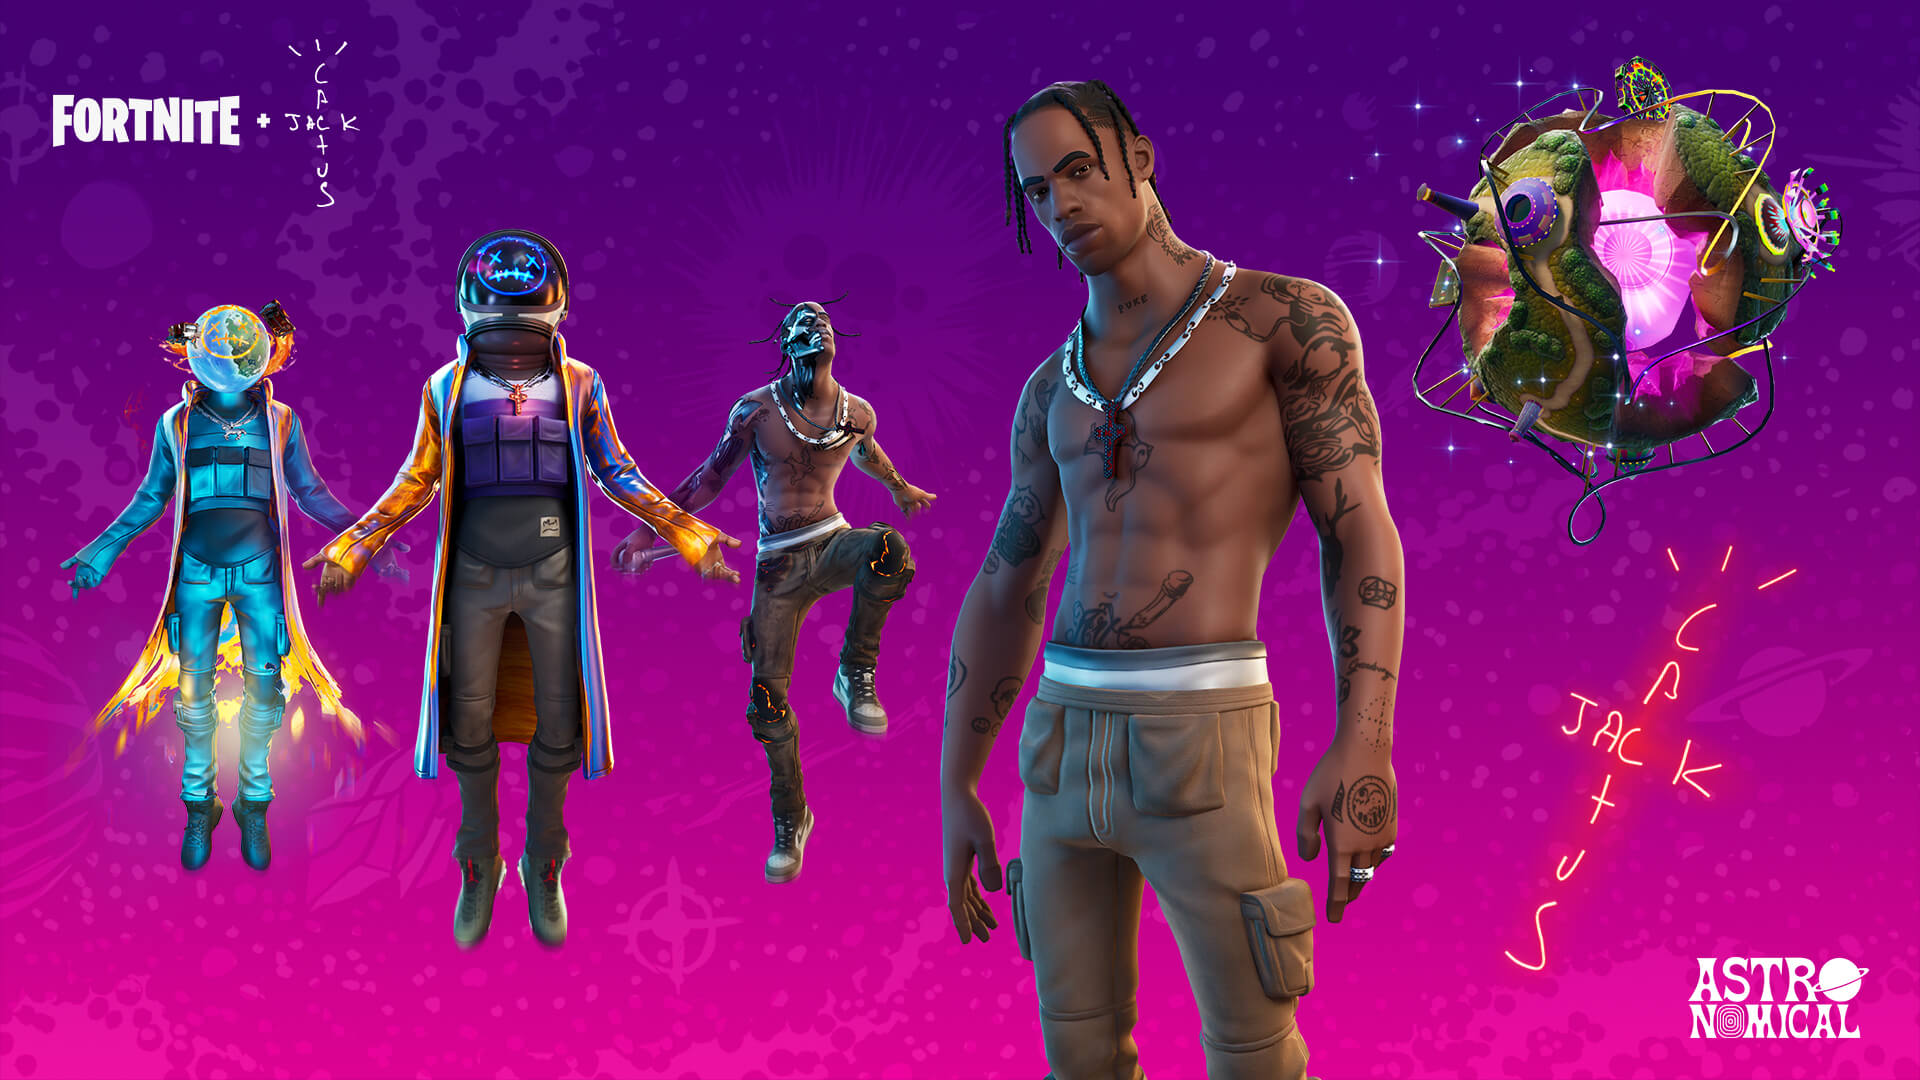 Epic Games 'Fortnite' / Travis Scott 'Astronomical'